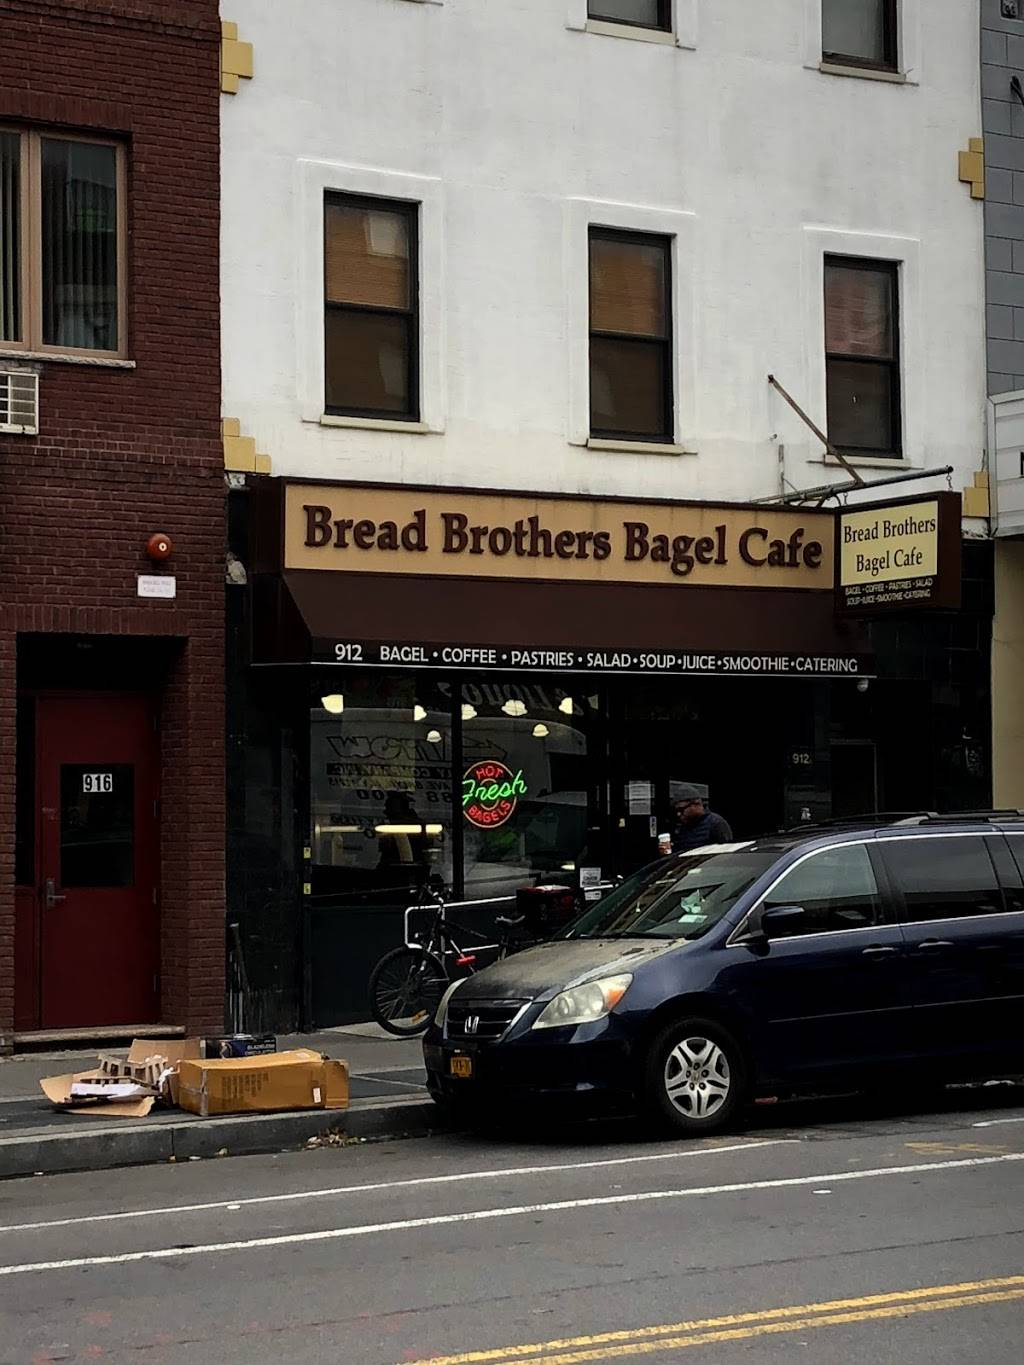 Bread Brothers Bagel Cafe - Greenpoint | restaurant | 912 Manhattan Ave, Brooklyn, NY 11222, USA | 7185763837 OR +1 718-576-3837